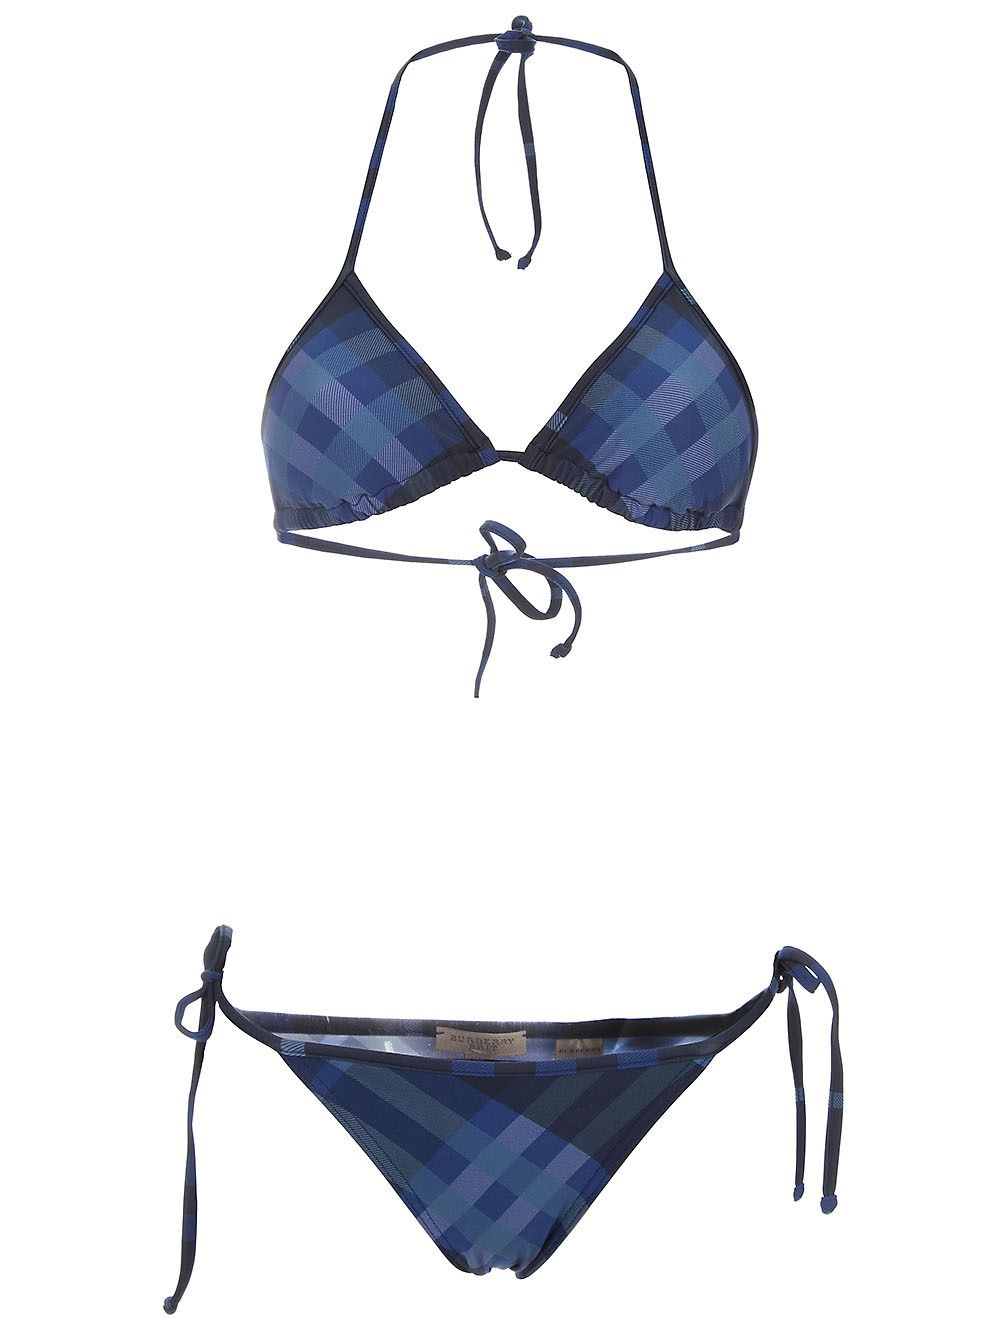 Burberry   Plaid bikinis, Strap swimsuit, Burberry outfit